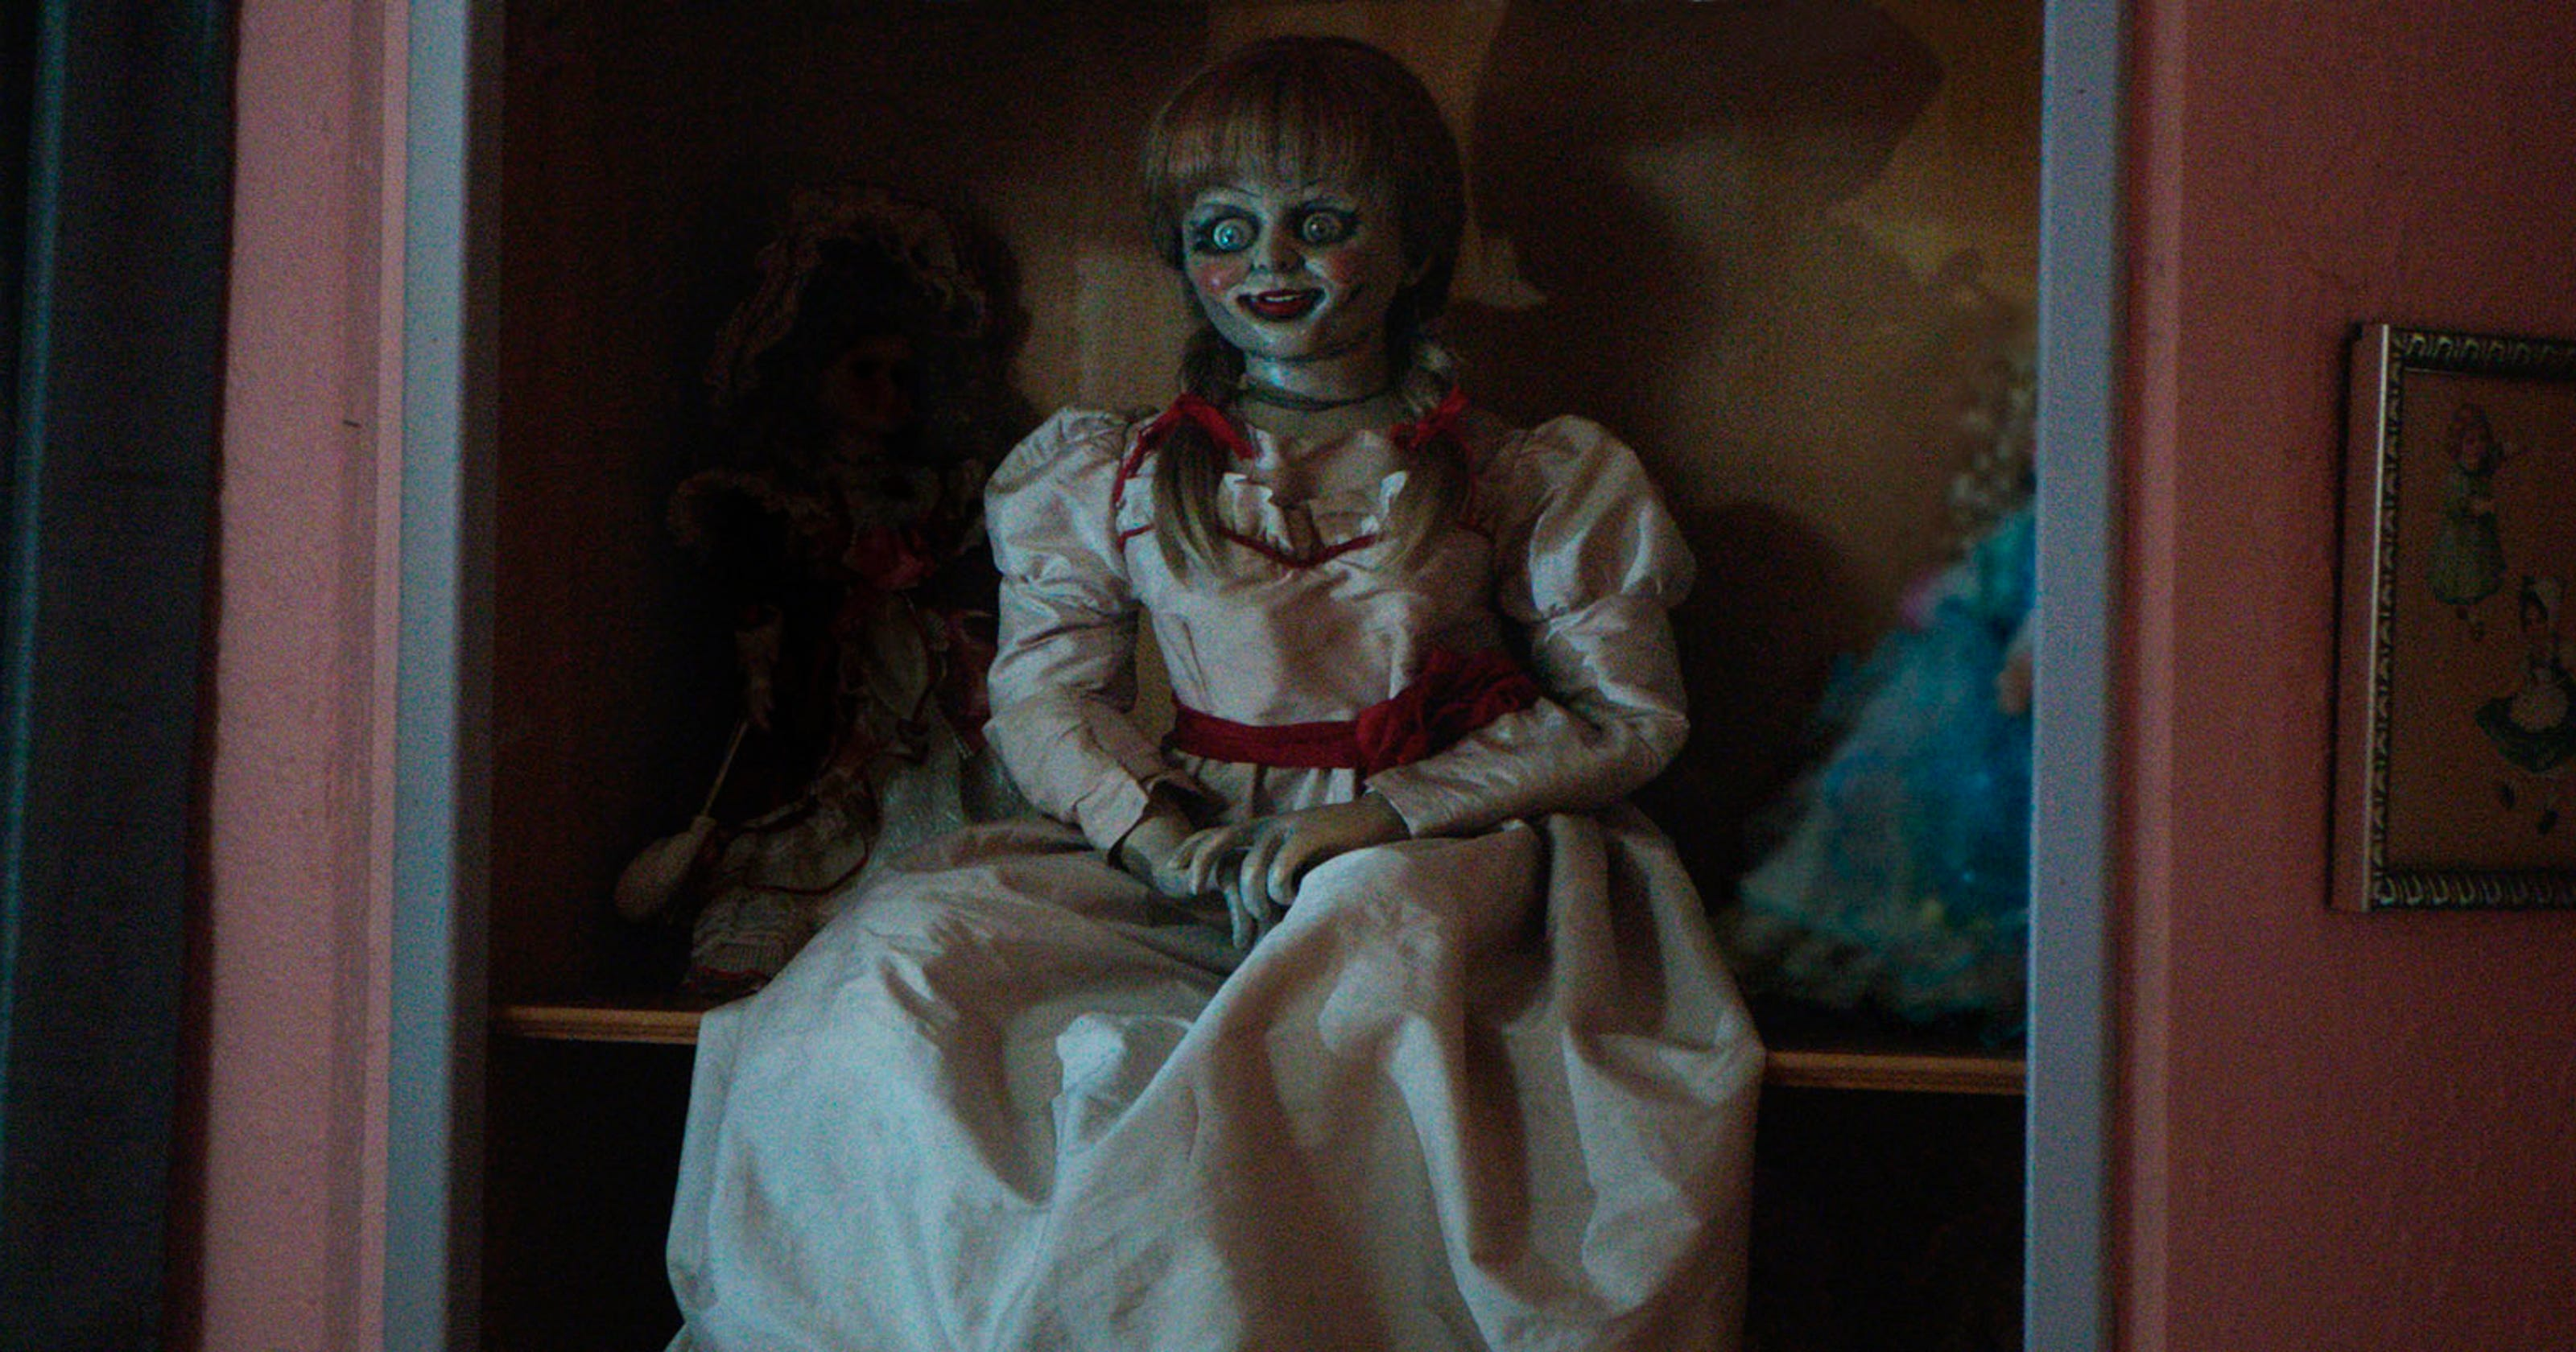 Annabelle: Creation' director keeps killer doll in his guest